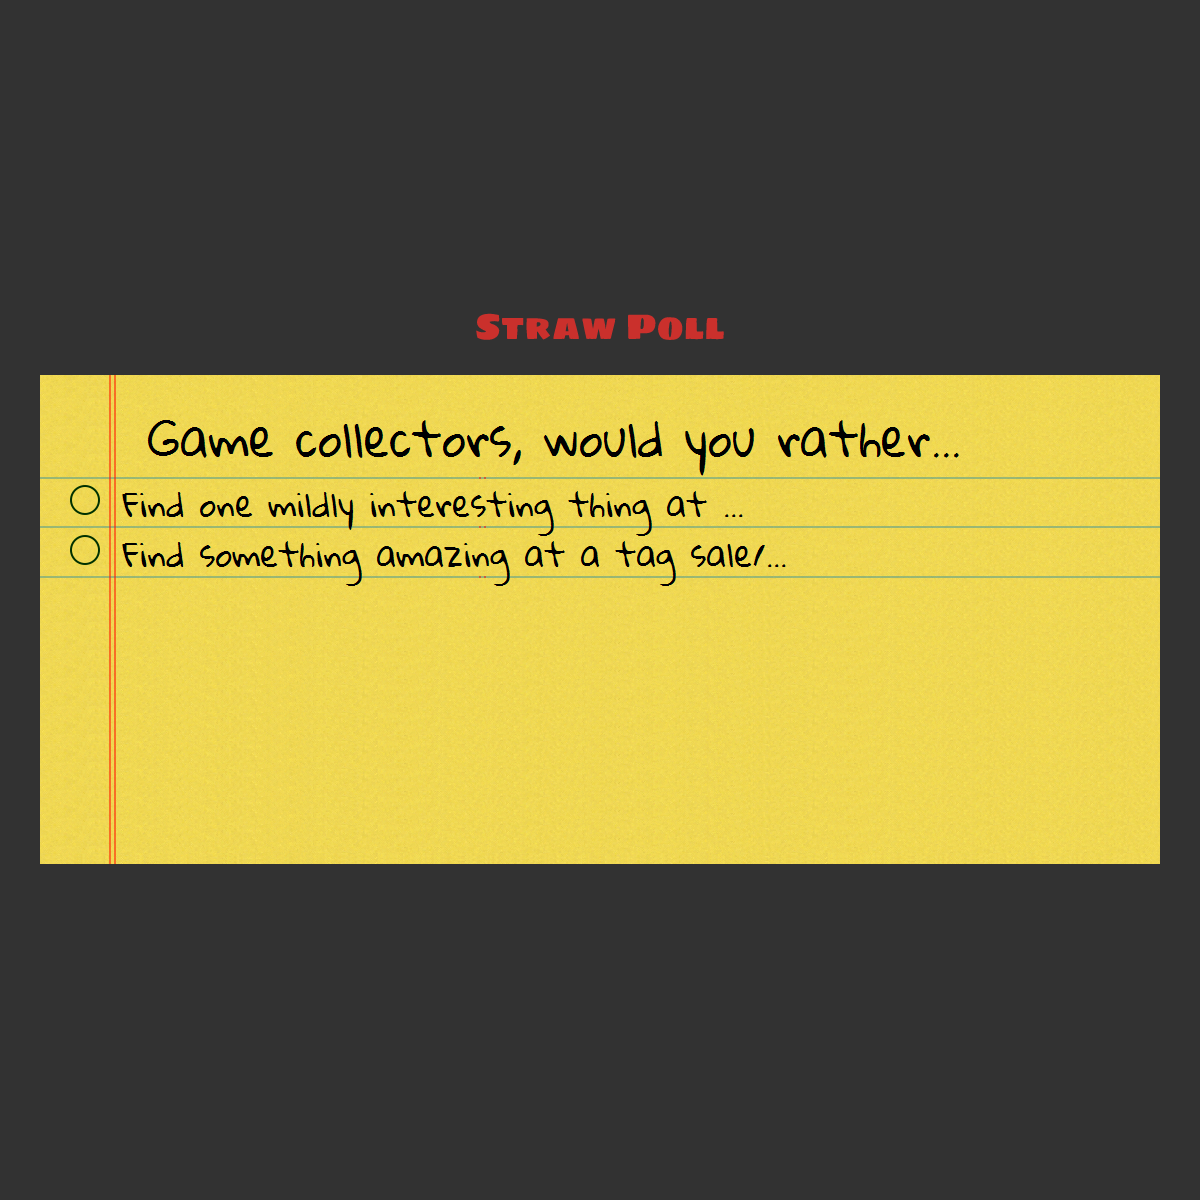 Strawpoll about tag sale thrift store finds collectionofgames